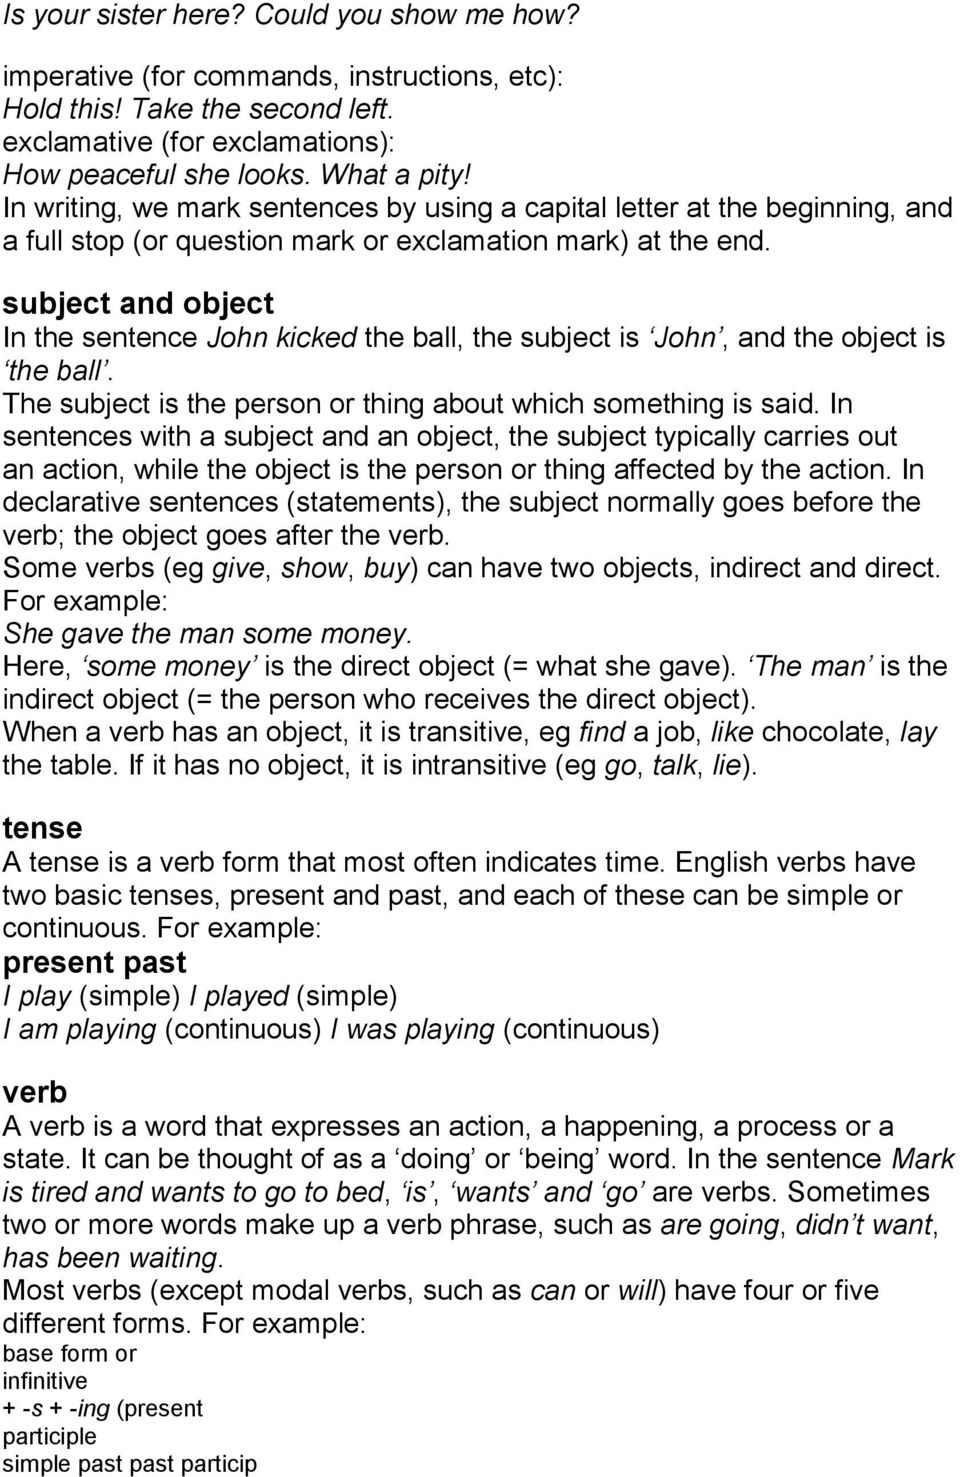 subject and object In the sentence John kicked the ball, the subject is John, and the object is the ball. The subject is the person or thing about which something is said.